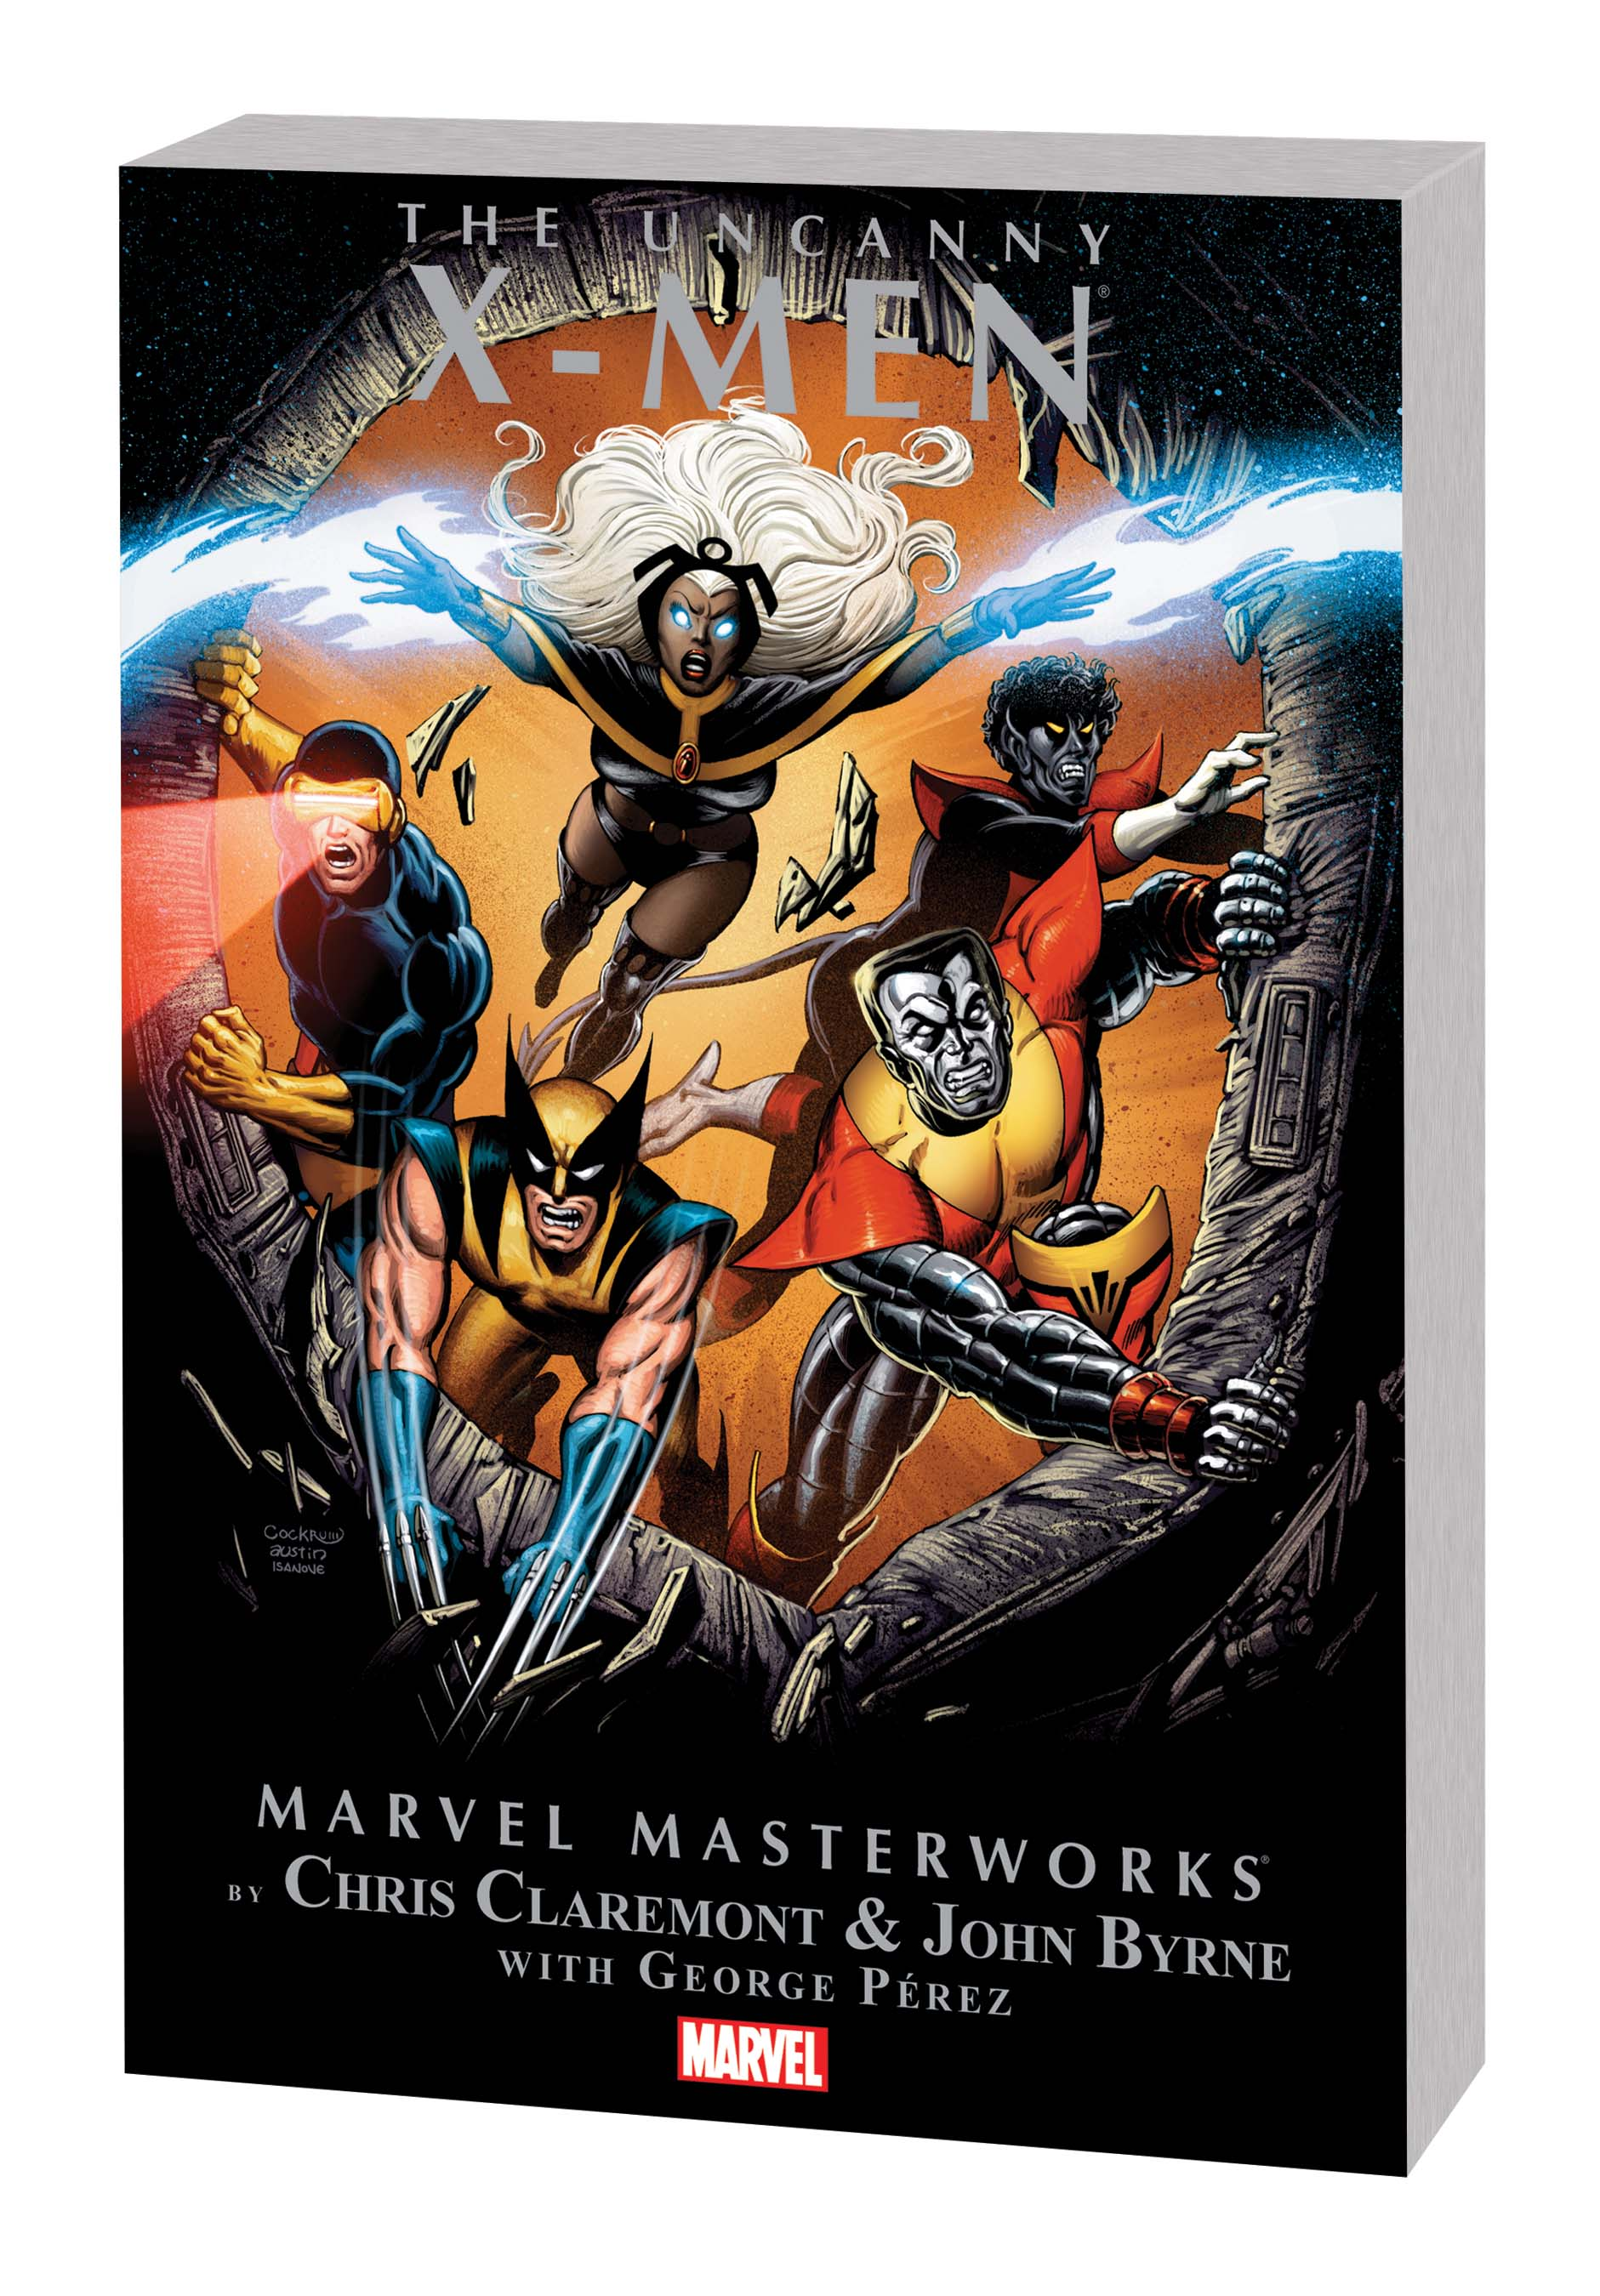 MARVEL MASTERWORKS: THE UNCANNY X-MEN VOL. 4 TPB (Trade Paperback)